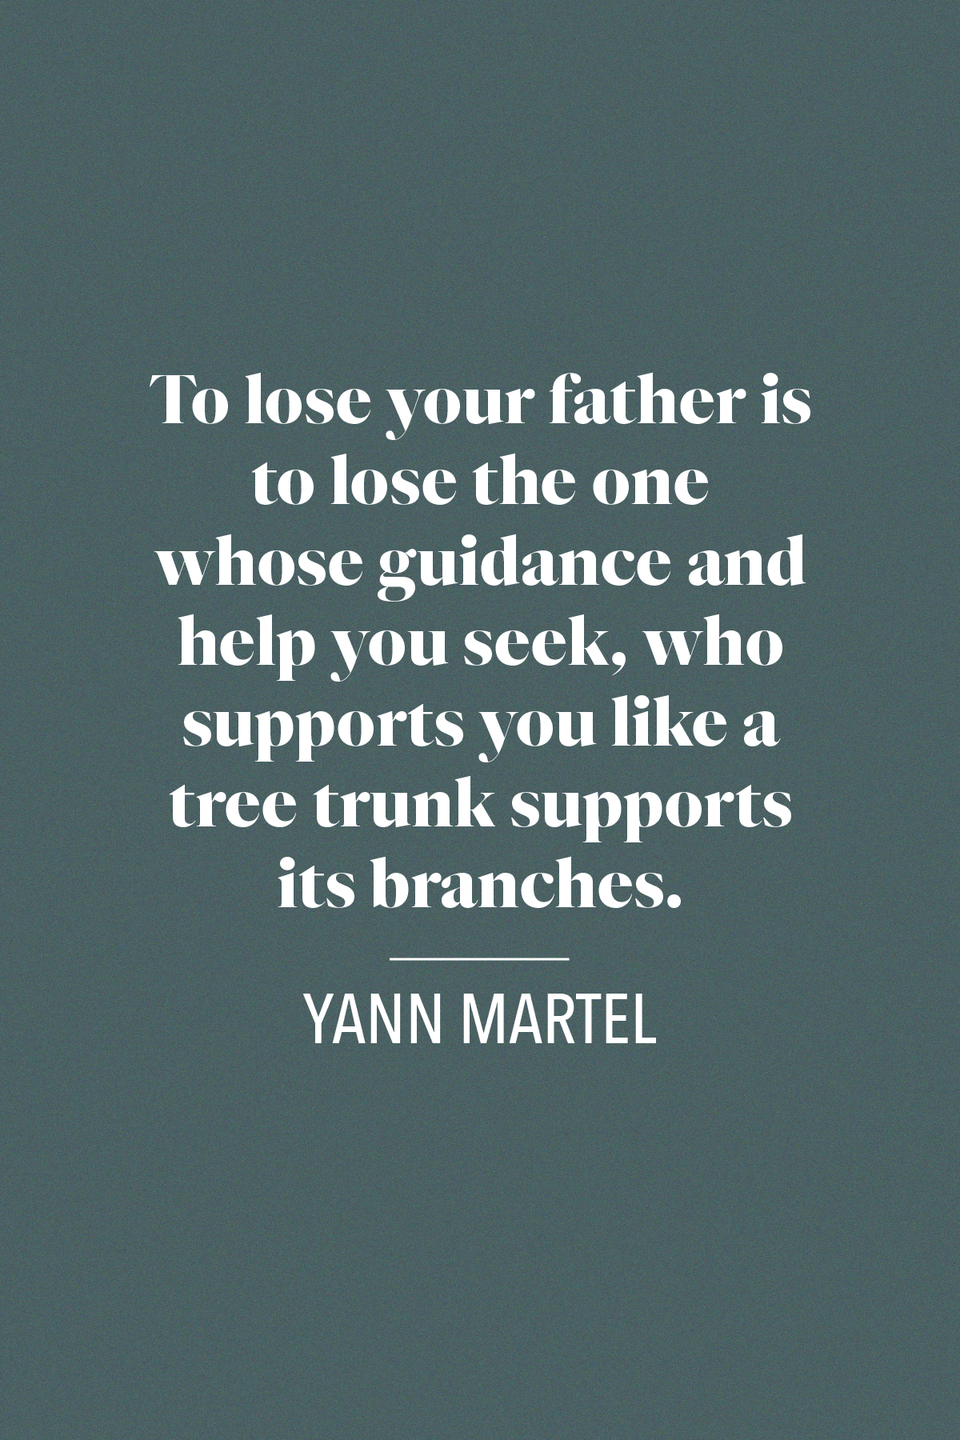 "<p>""To lose your father is to lose the one whose guidance and help you seek, who supports you like a tree trunk supports its branches,"" Canadian author Yann Martel said in his <em>New York Times Bestseller,</em> <em><a href=""https://www.amazon.com/dp/1786891689/ref=dp-kindle-redirect?_encoding=UTF8&btkr=1&tag=syn-yahoo-20&ascsubtag=%5Bartid%7C10072.g.32909234%5Bsrc%7Cyahoo-us"" rel=""nofollow noopener"" target=""_blank"" data-ylk=""slk:Life of Pi"" class=""link rapid-noclick-resp"">Life of Pi</a></em>.</p>"